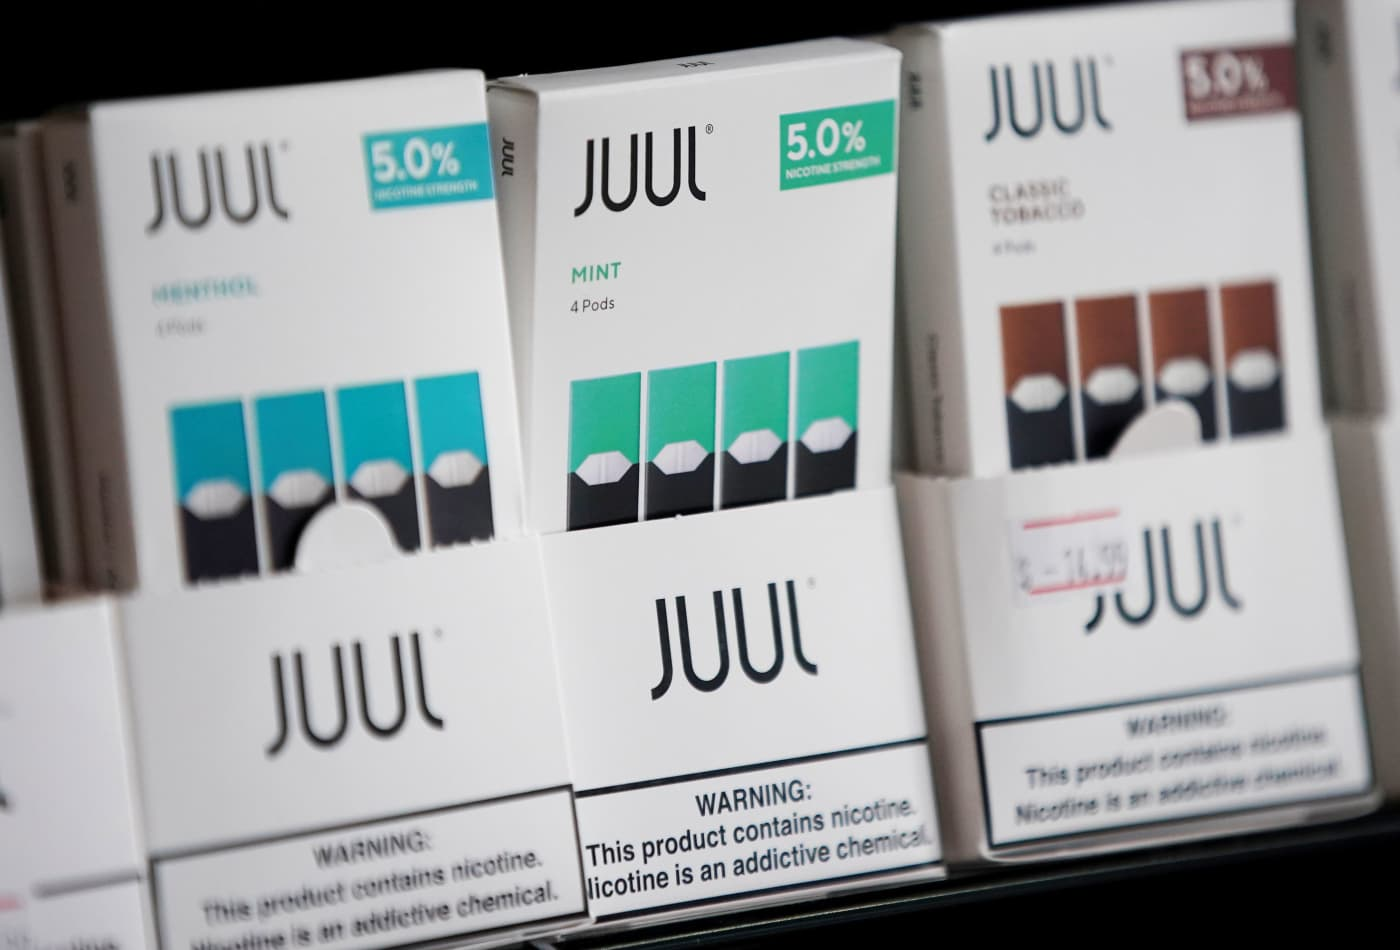 SEC reportedly probing Altria's Juul investment